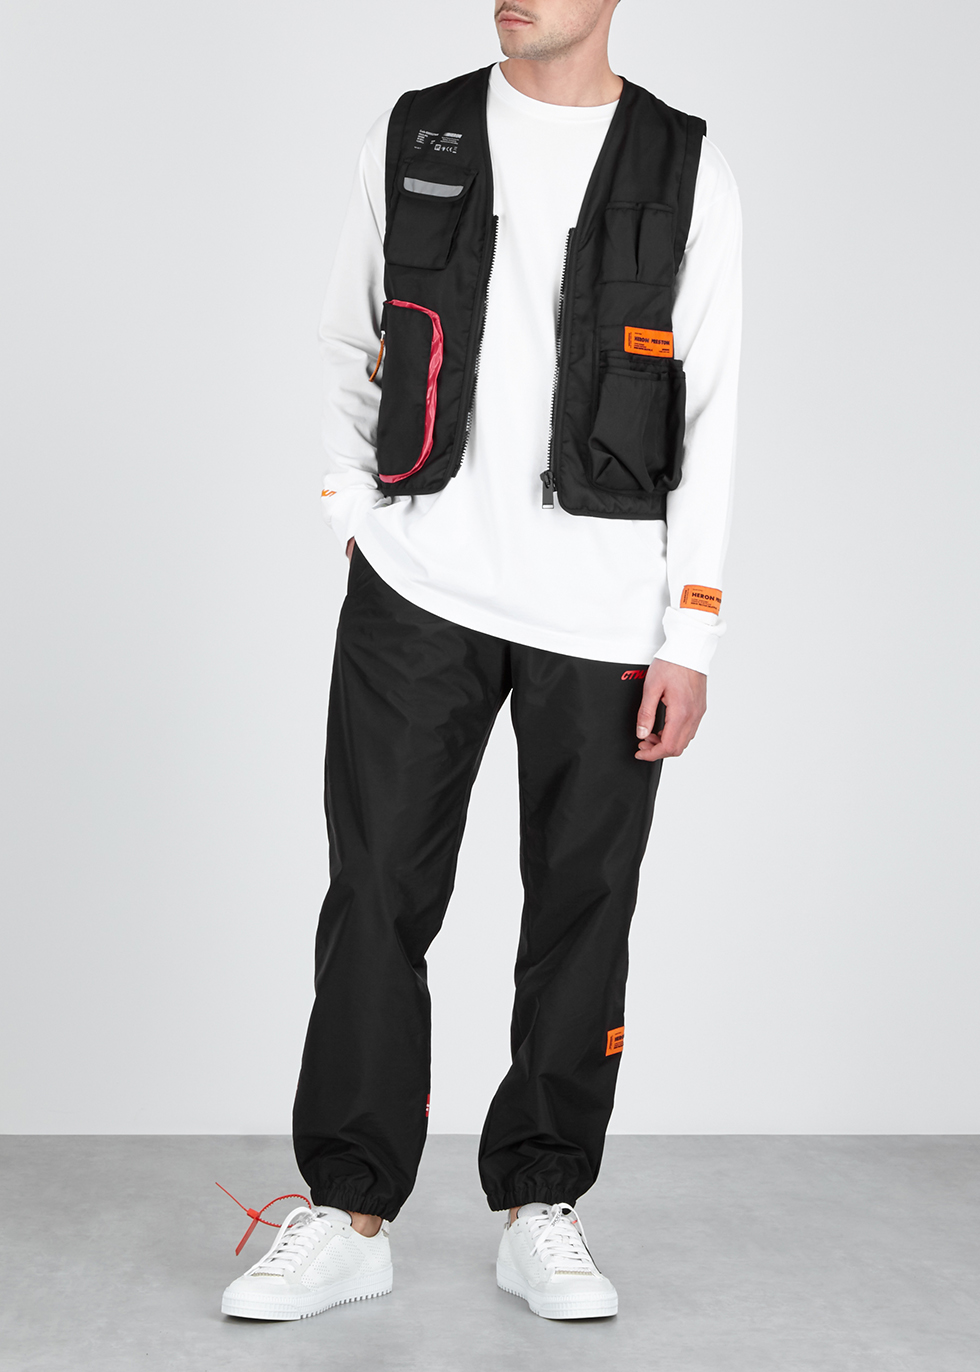 41de59e9e9d0 Heron Preston Black nylon gilet - Harvey Nichols